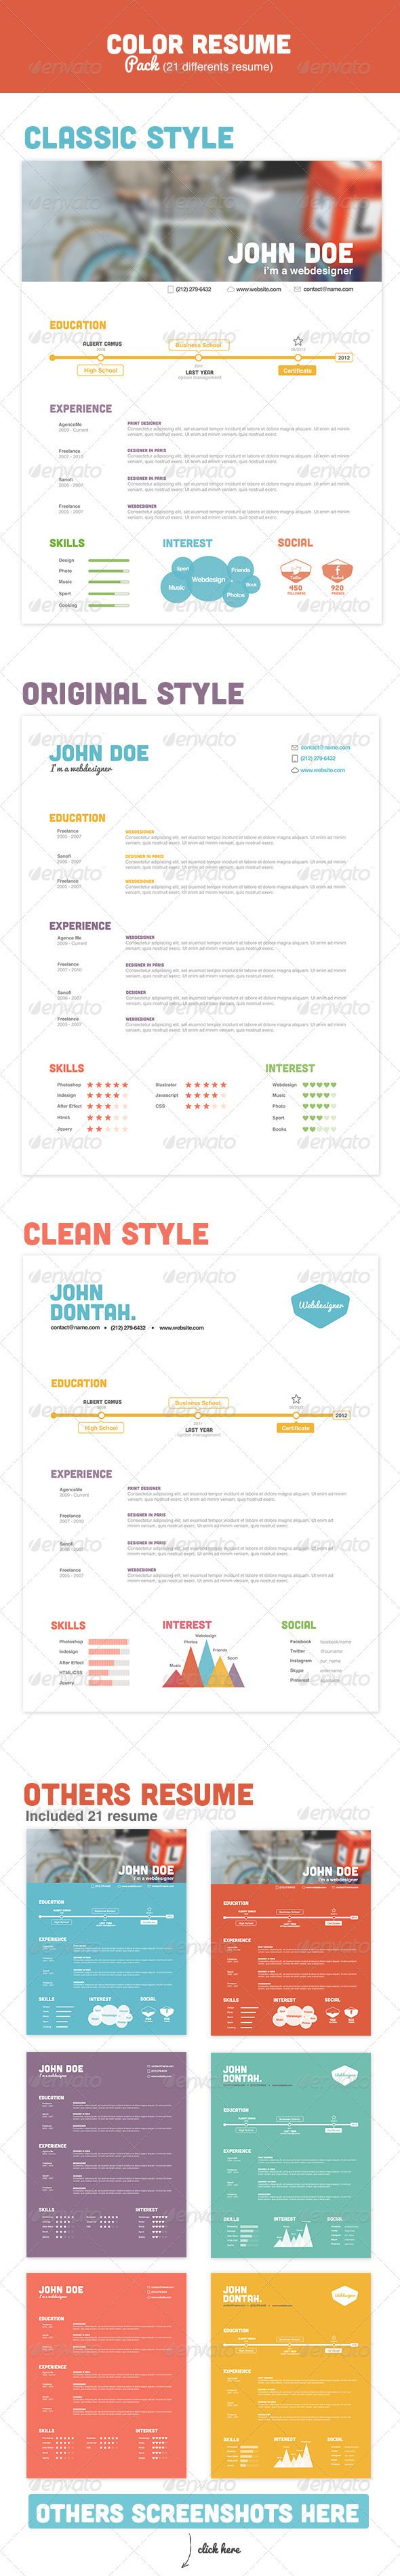 Resume Resume Inspiration 168 best creative cv inspiration images on pinterest find this pin and more inspiration